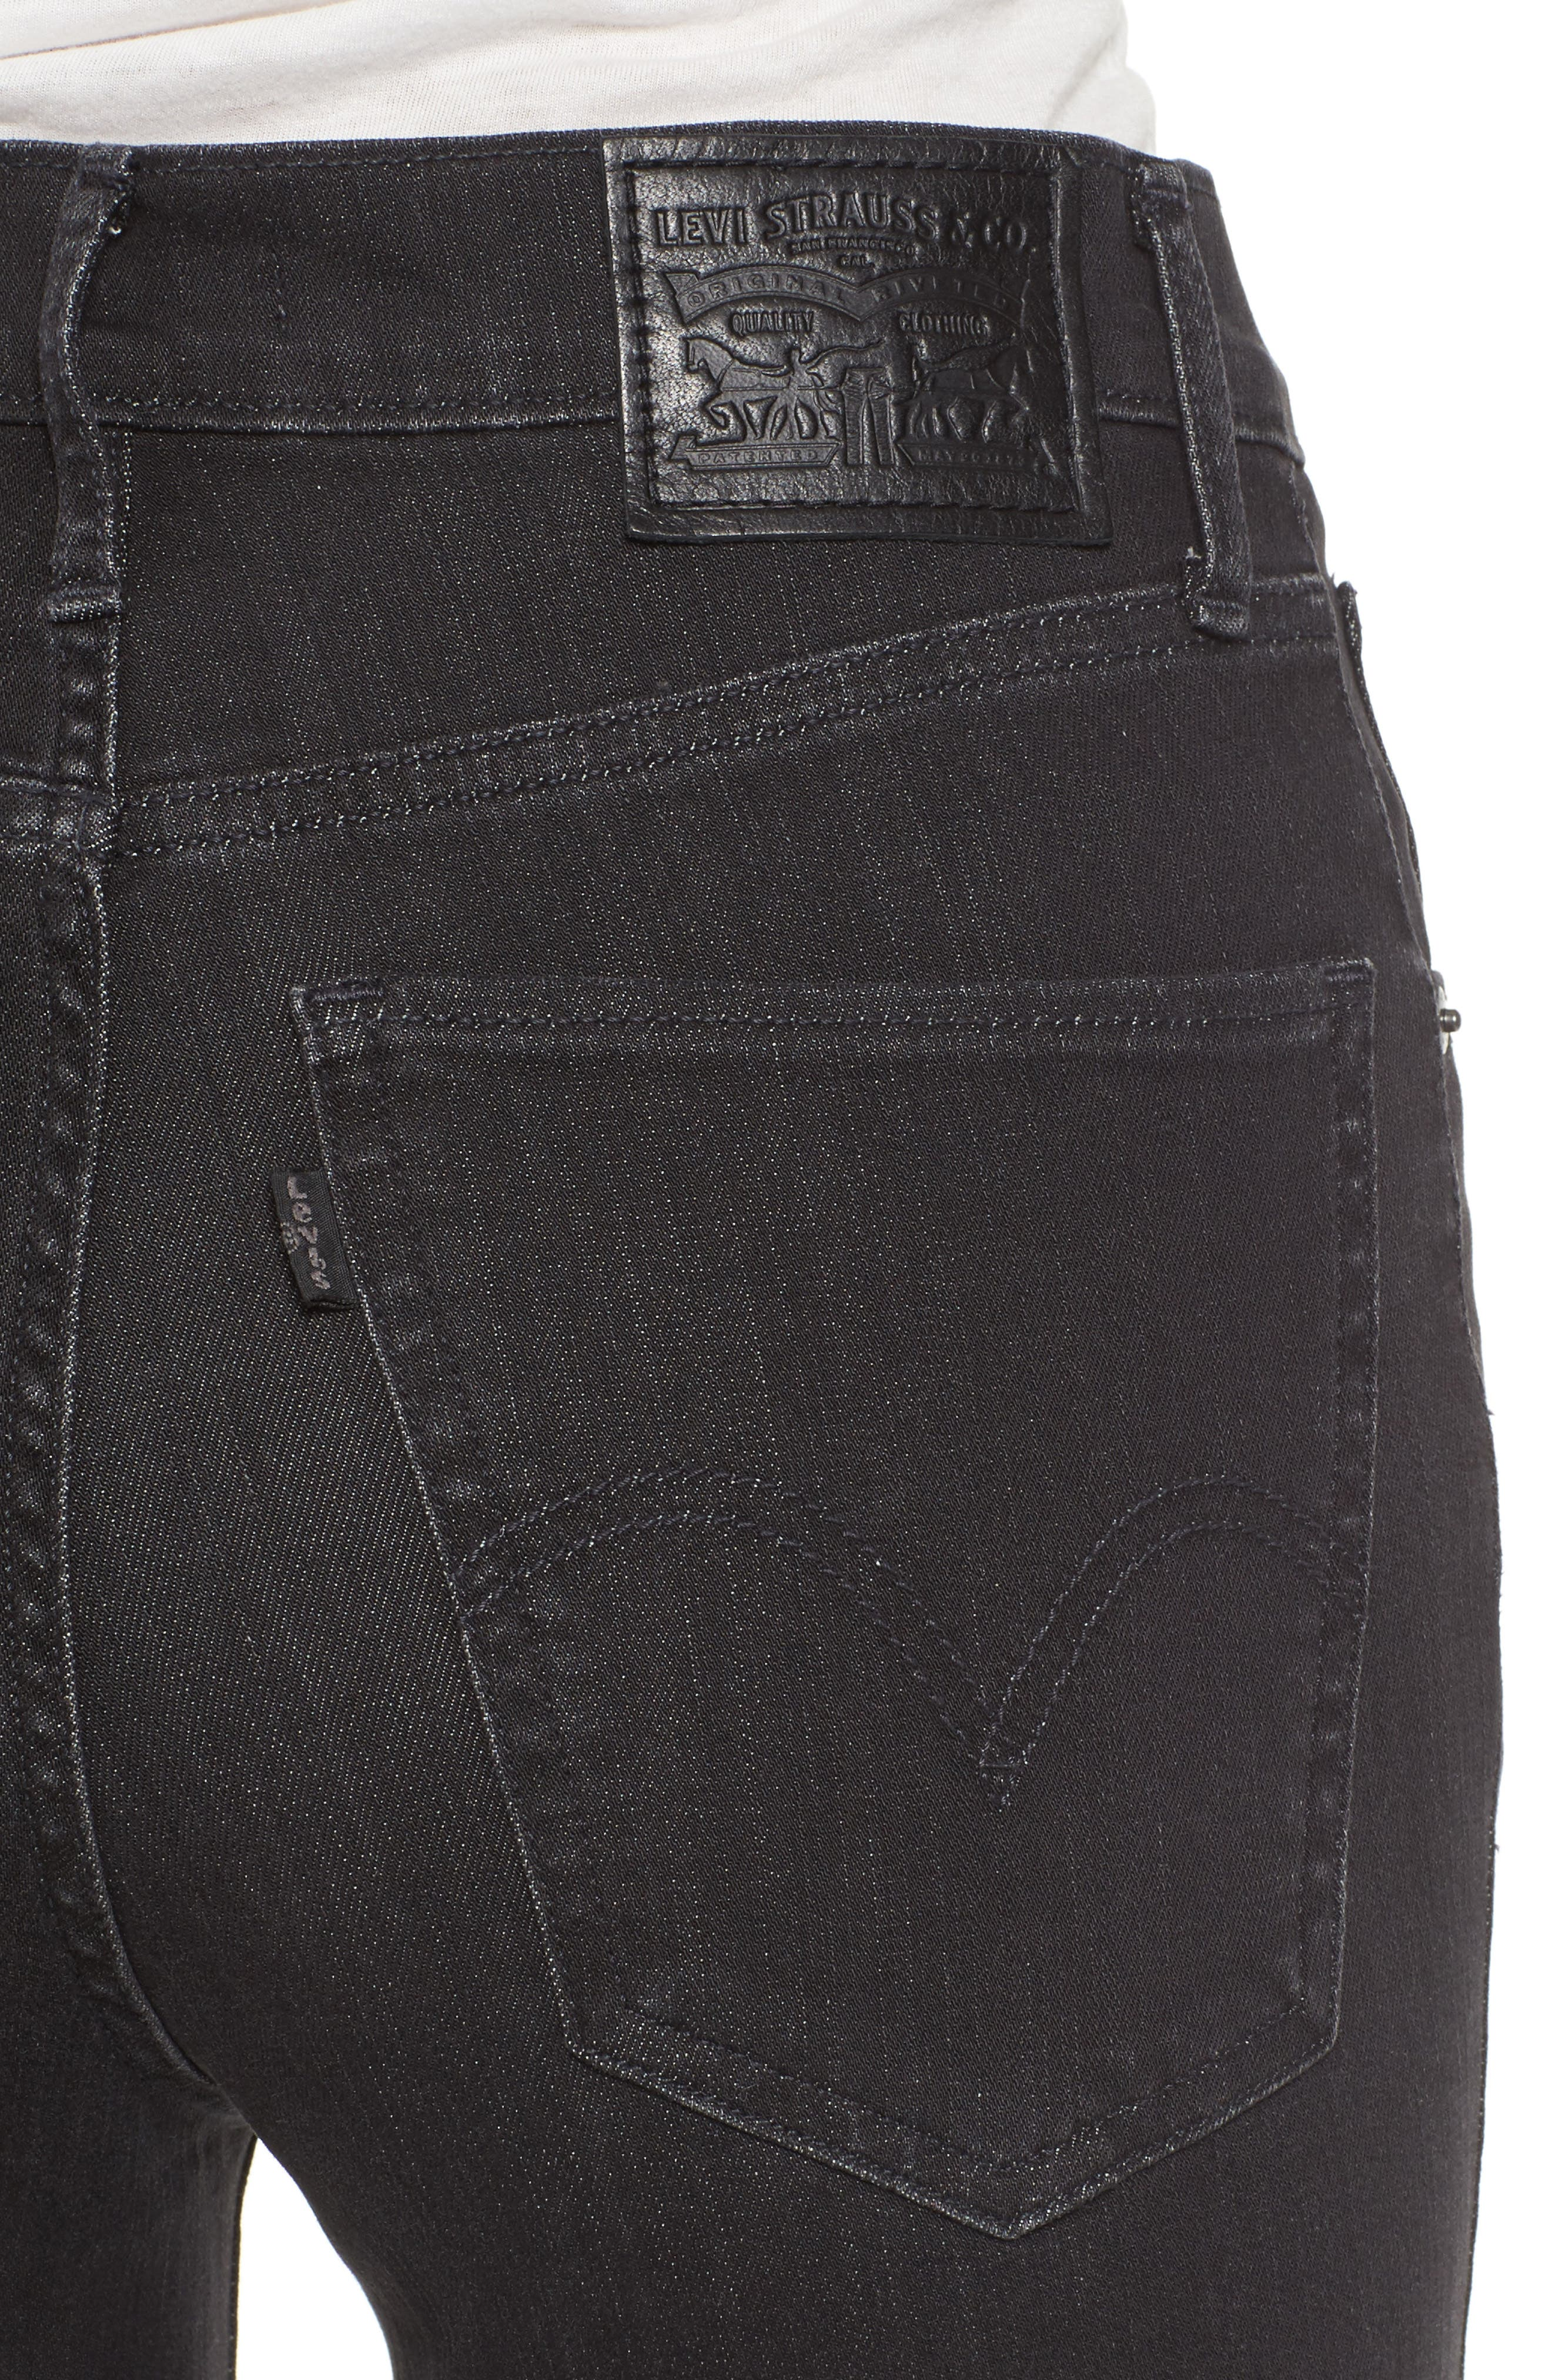 Mile High High Rise Skinny Jeans,                             Alternate thumbnail 4, color,                             001